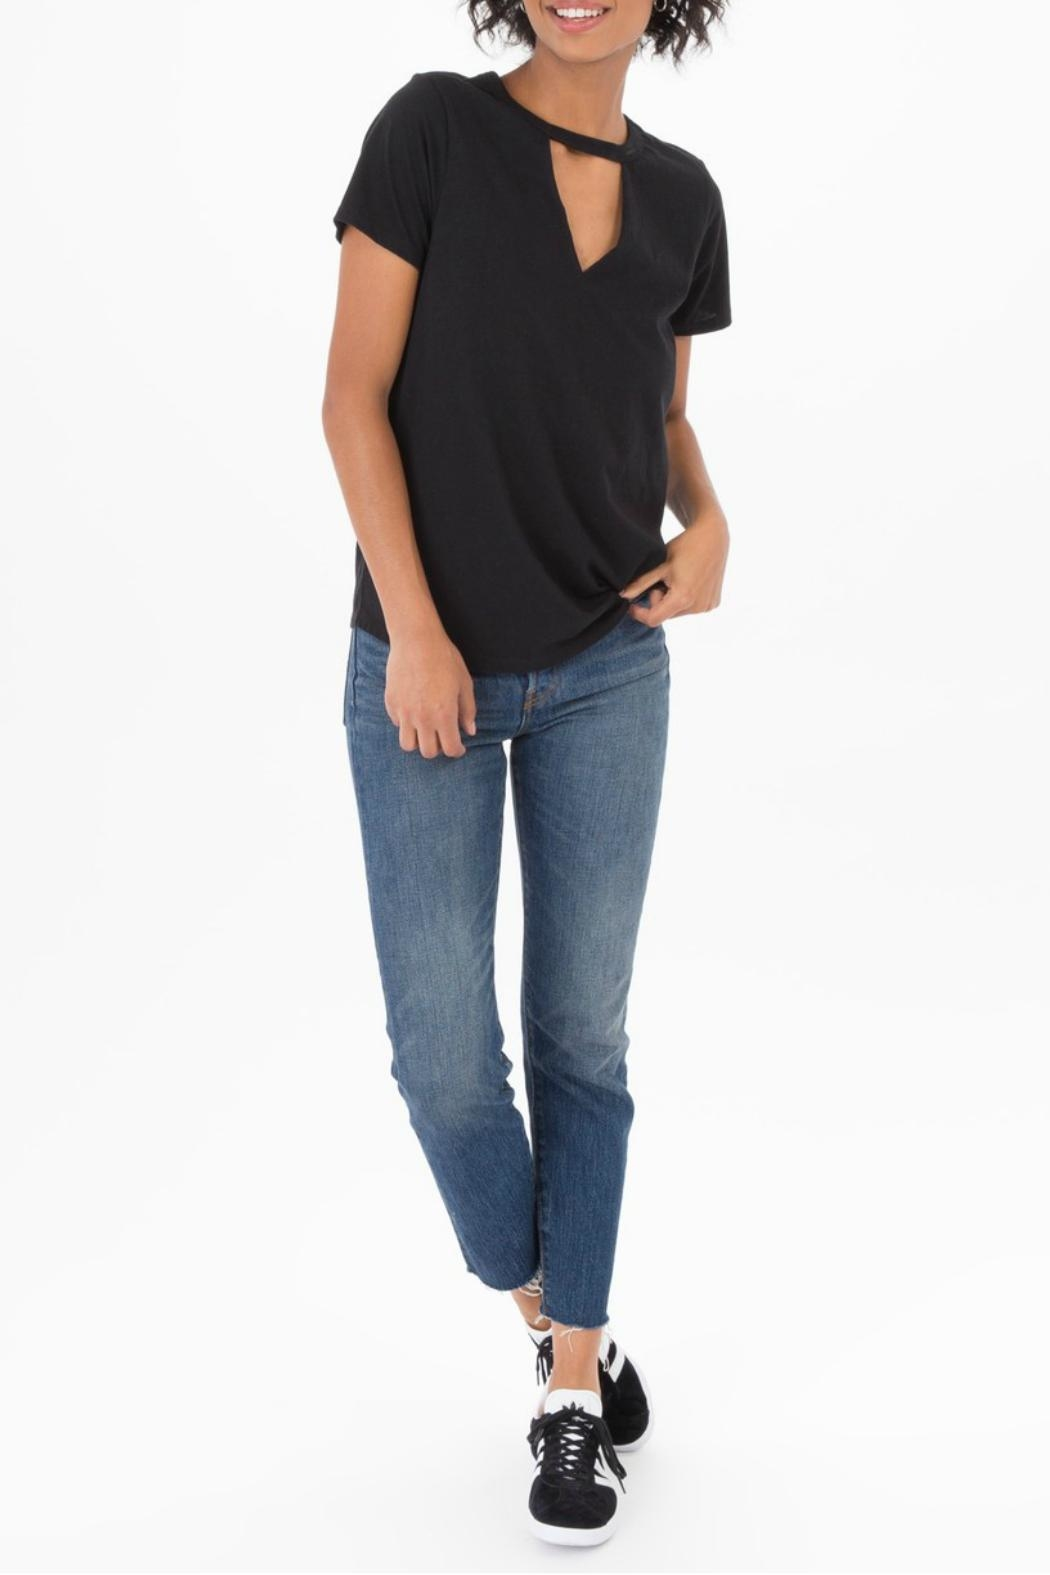 z supply Cutout Choker Tee - Back Cropped Image